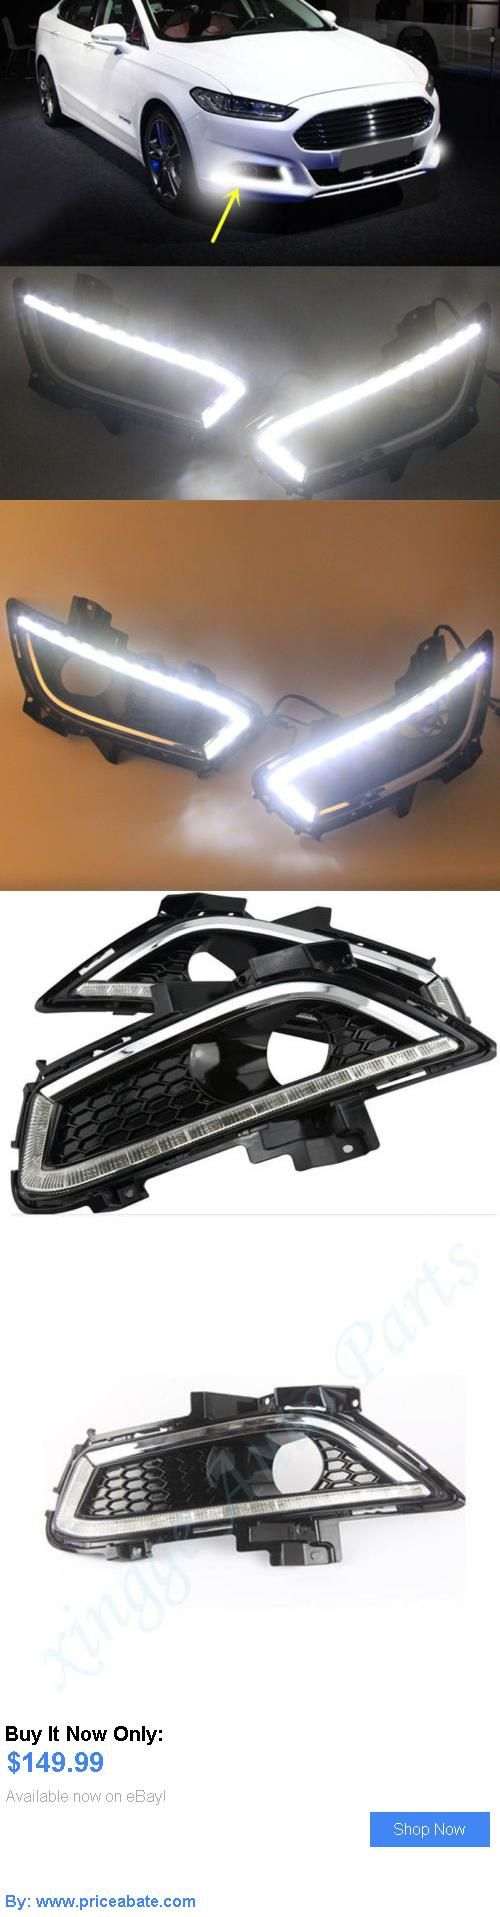 Motors parts and accessories 2x drl led daytime running light fog lamp cover for ford